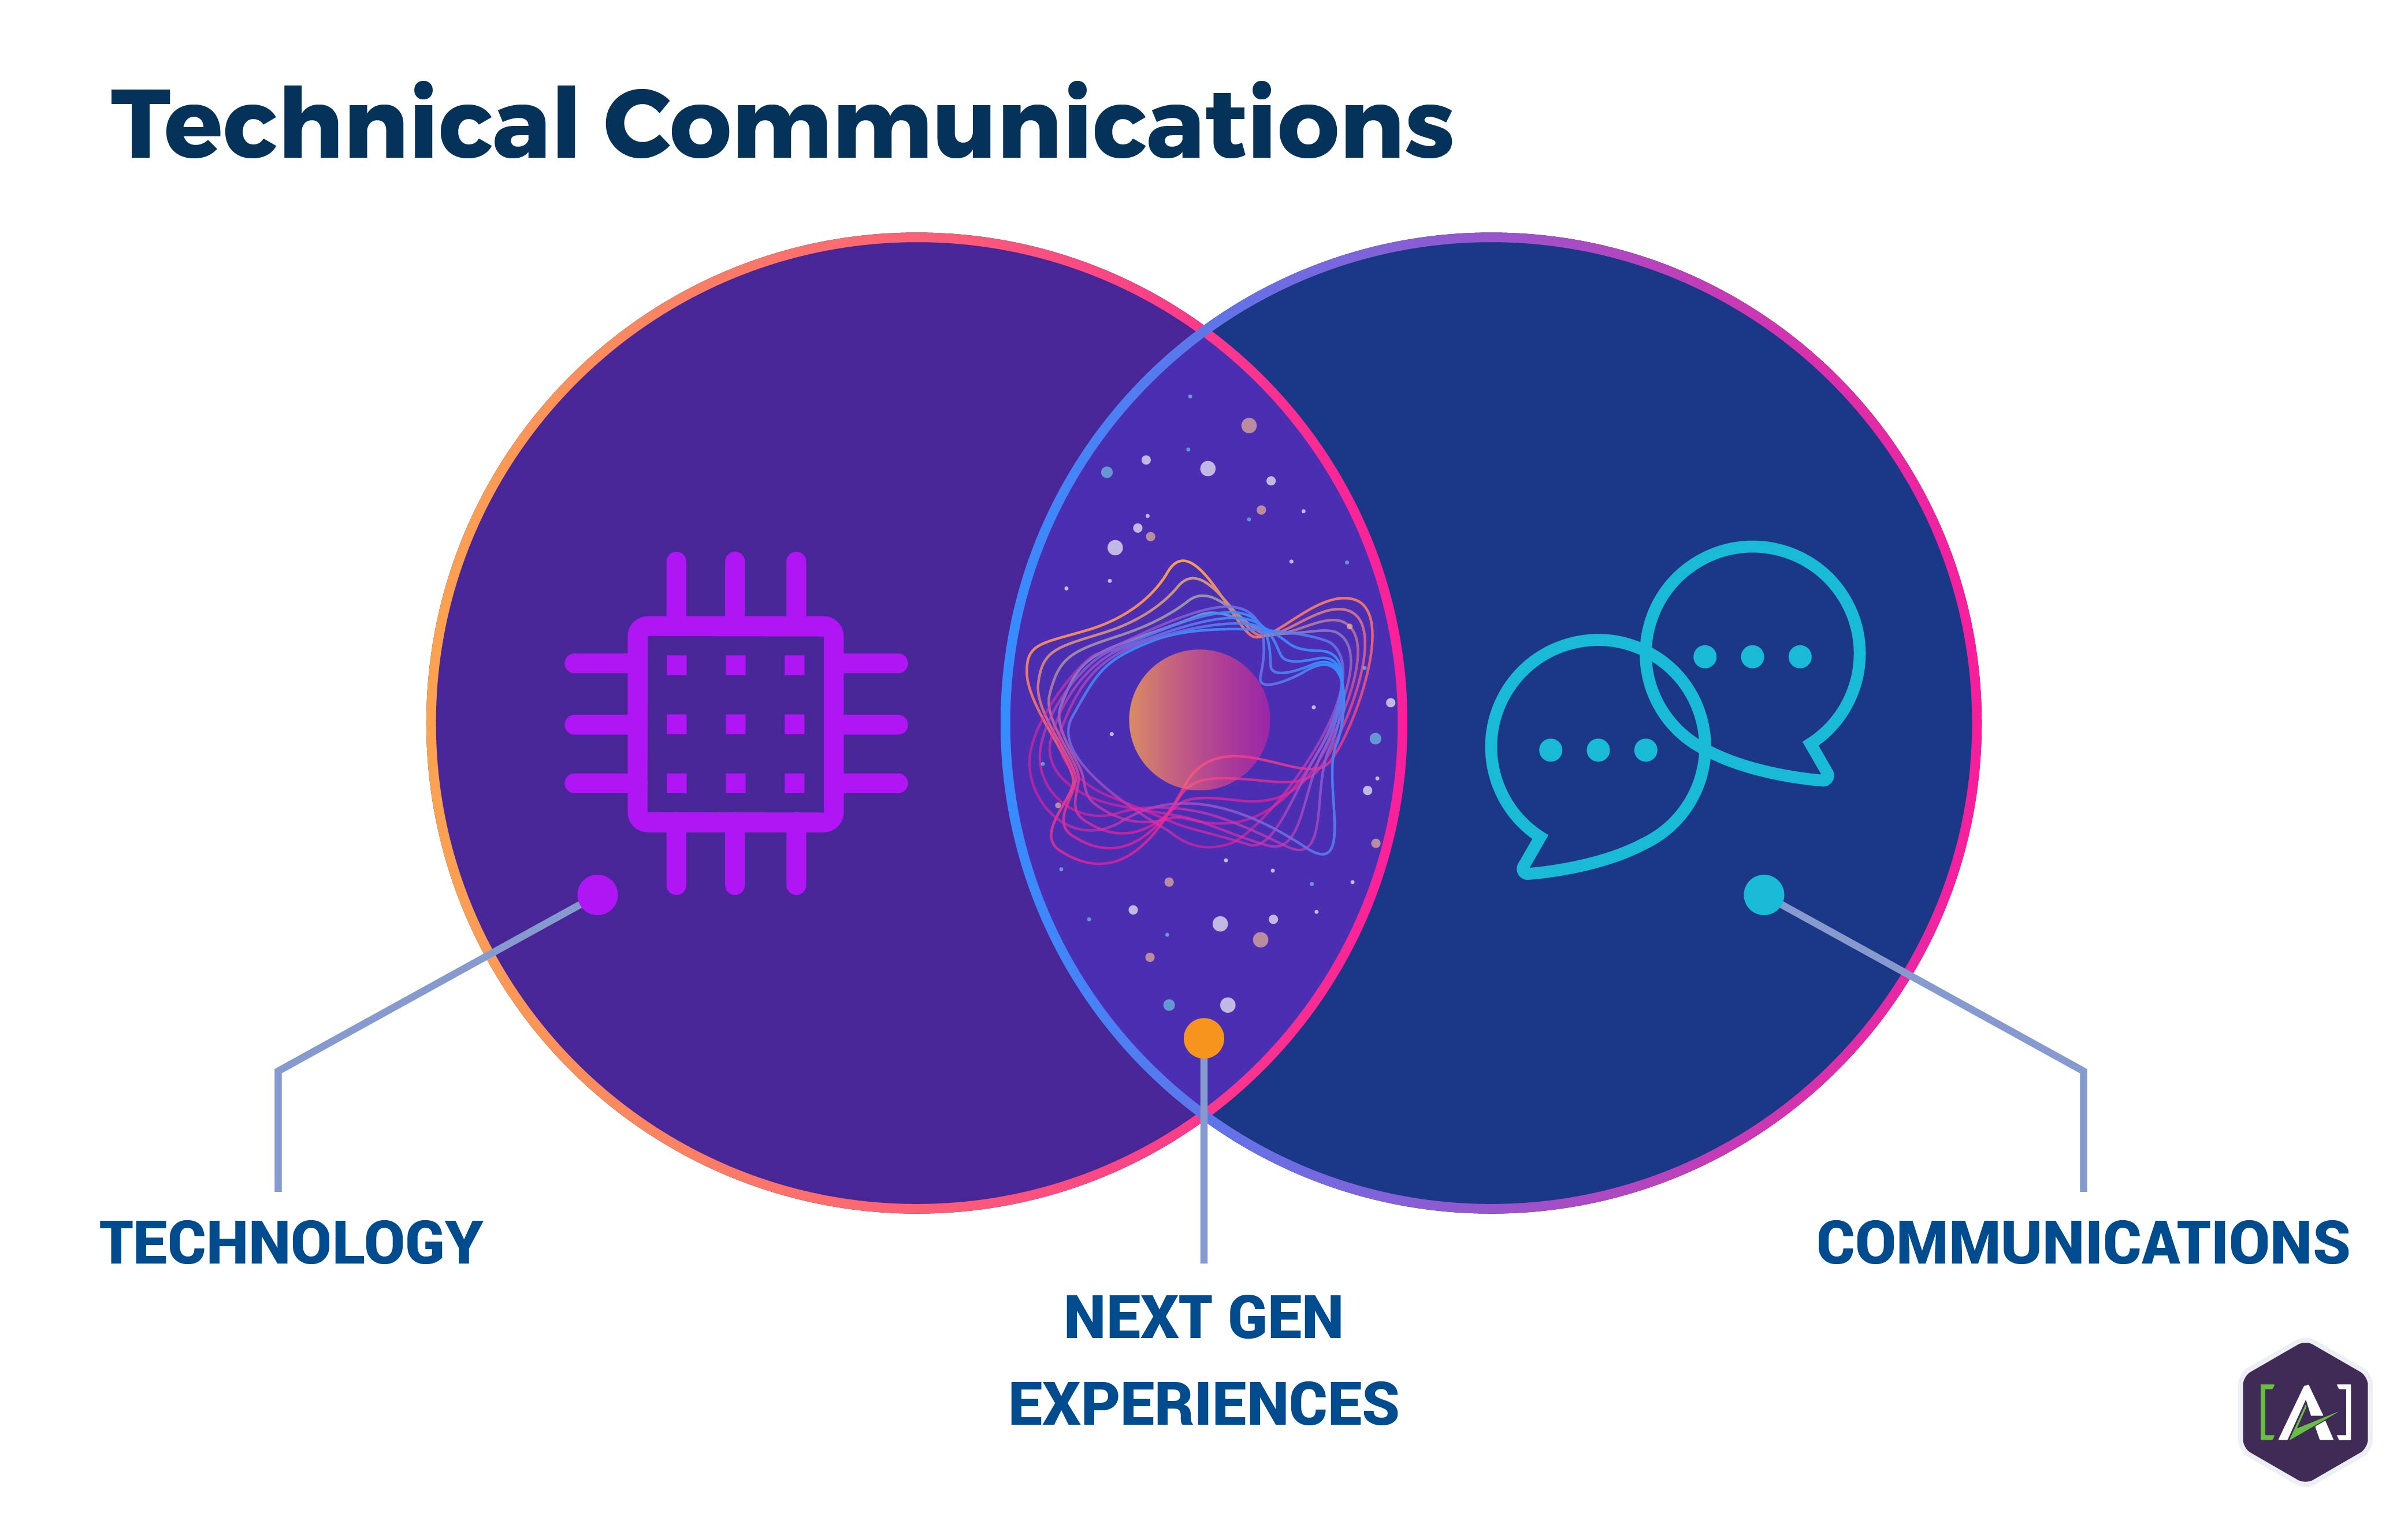 Technical Communications Diagram